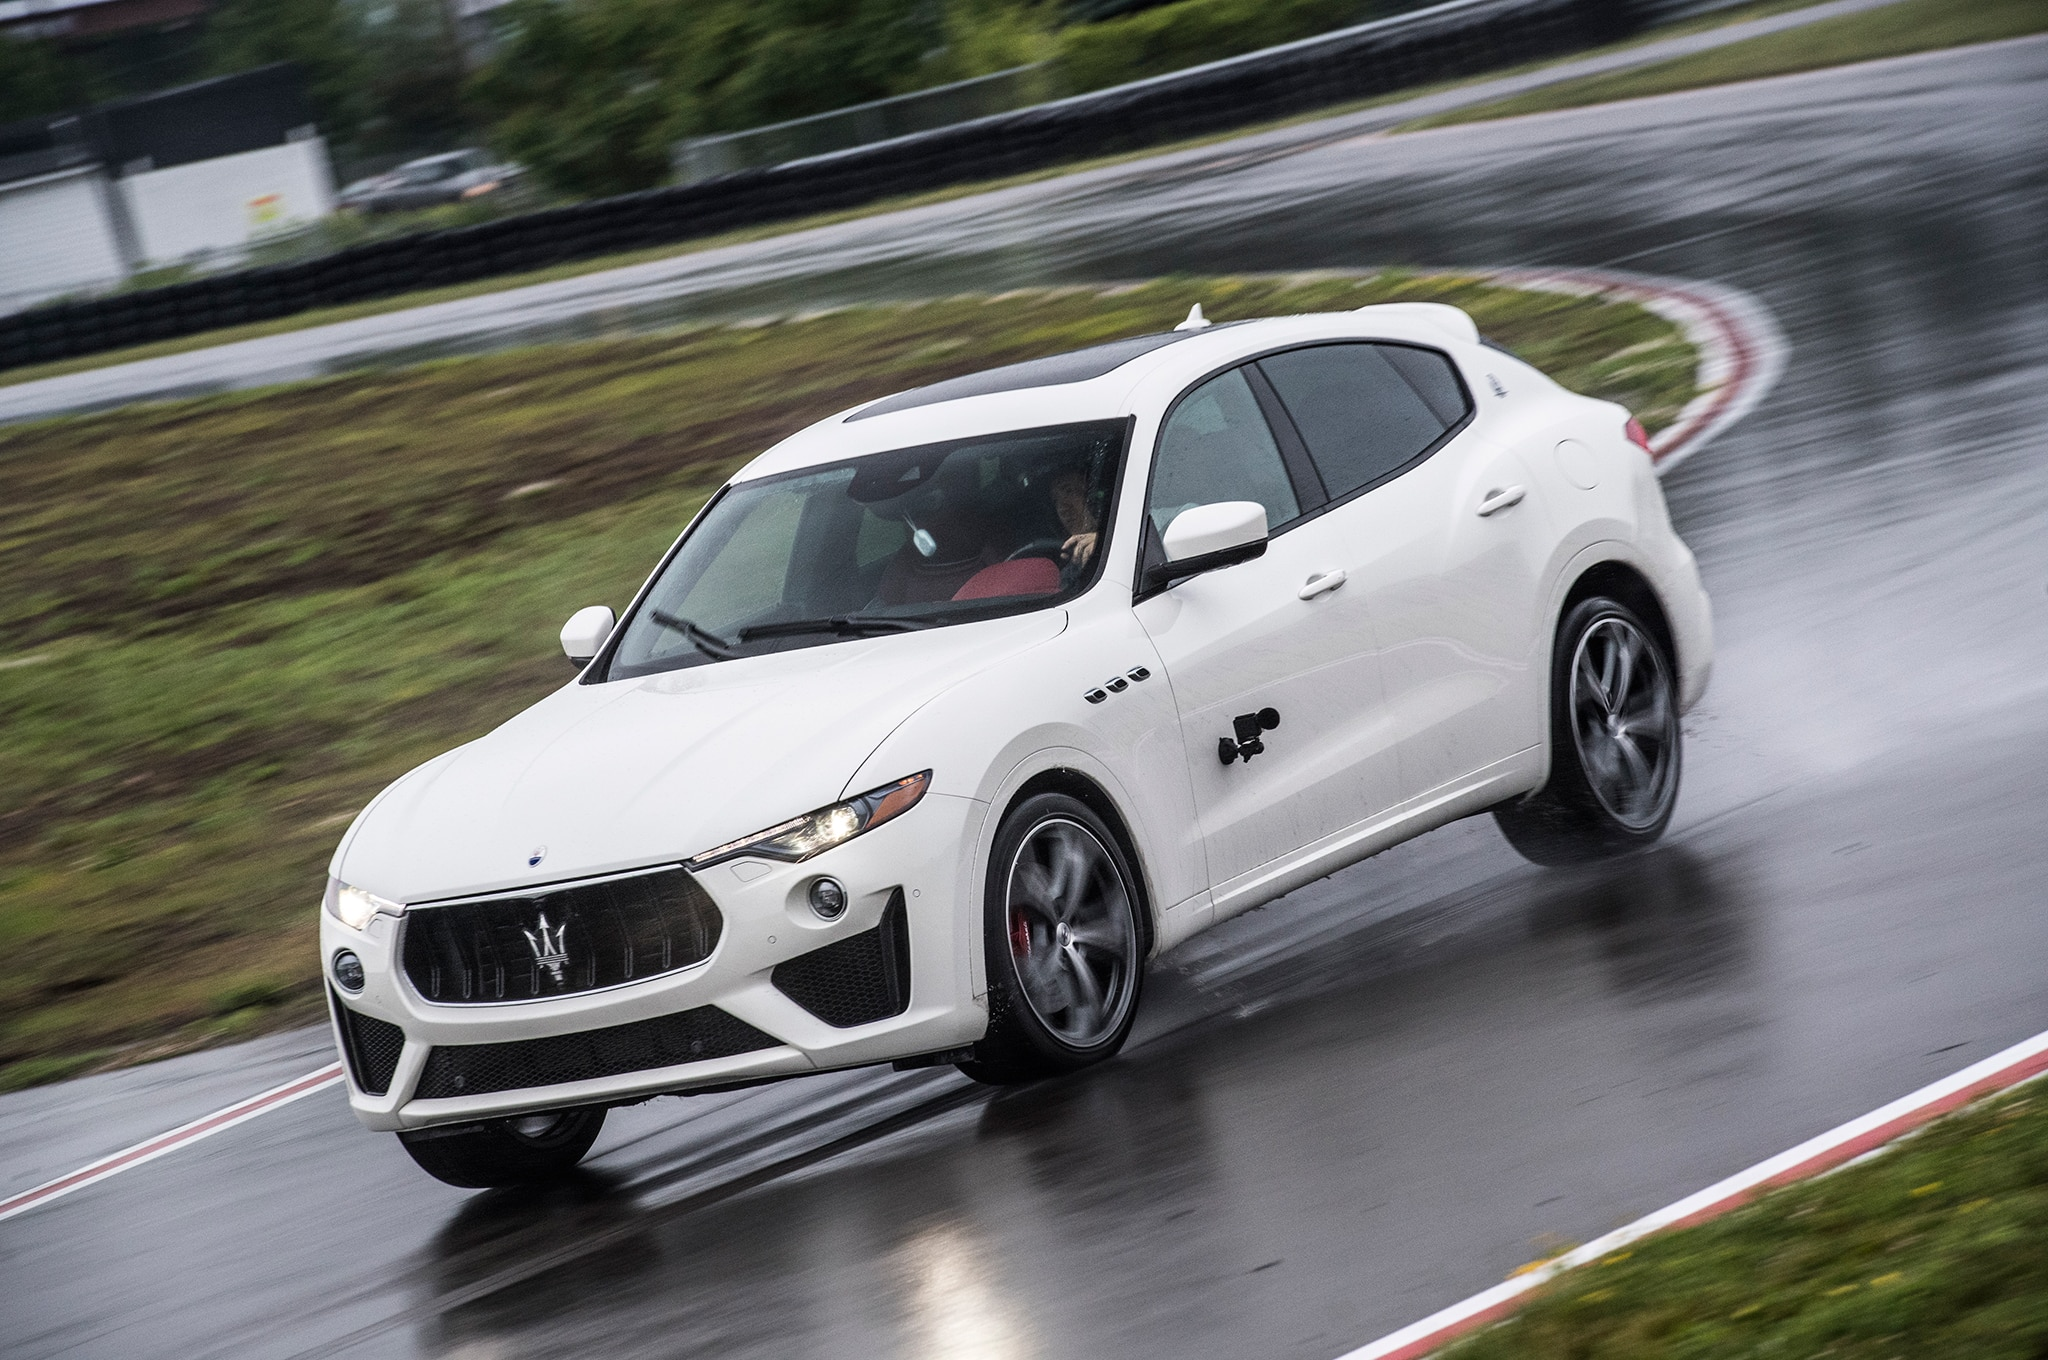 2019 Maserati Levante Gts Takes A Shot Across The Cayenne Turbo S Bow